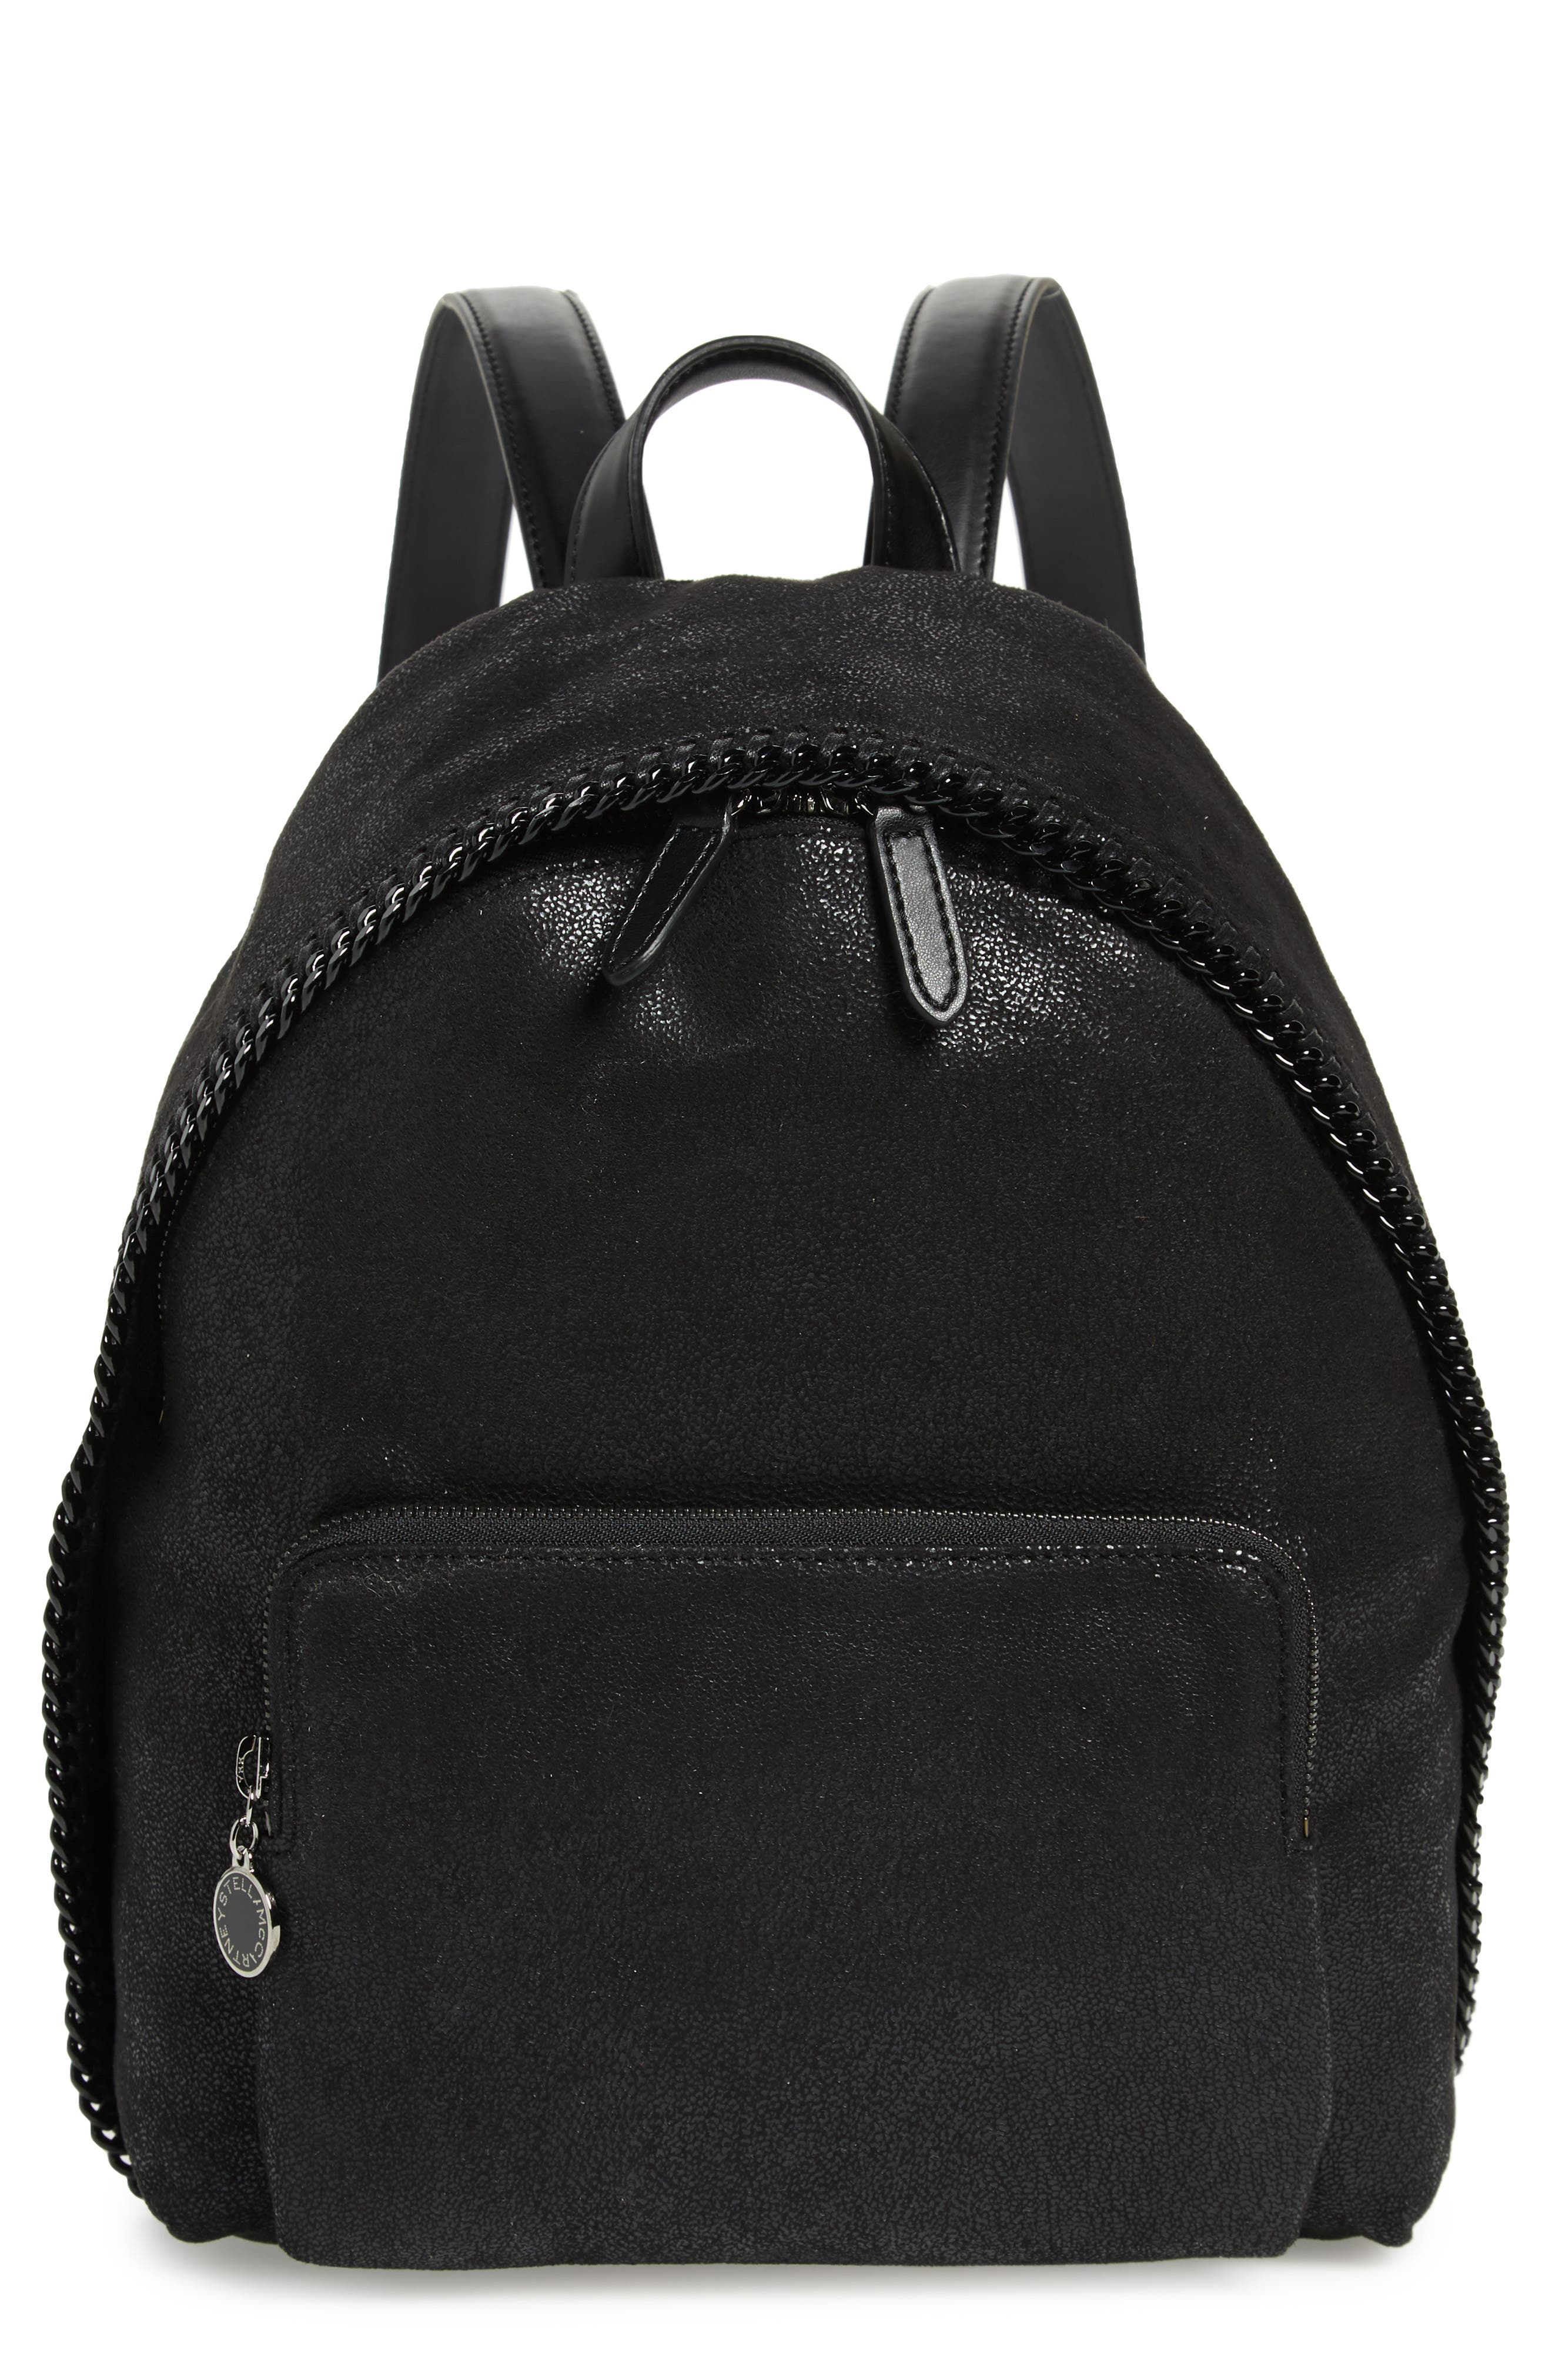 Stella Mccartney Small Falabella Faux Leather Backpack - Black